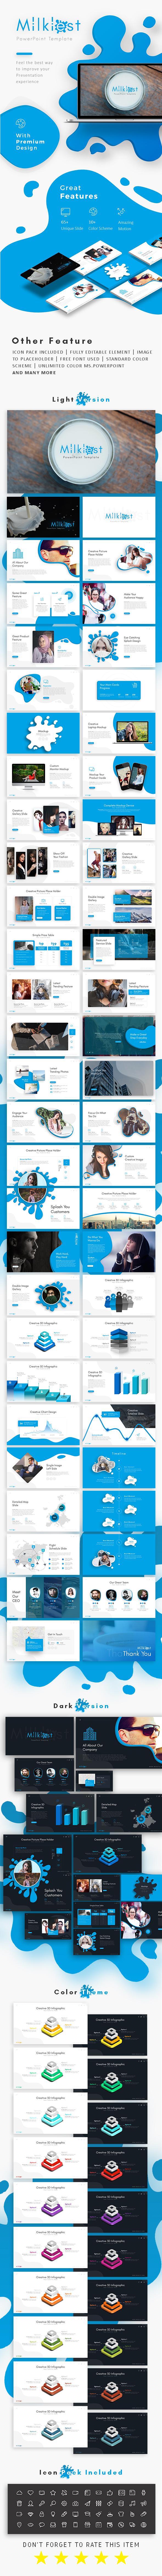 Milkiest Creative Presentation Template - Creative PowerPoint Templates